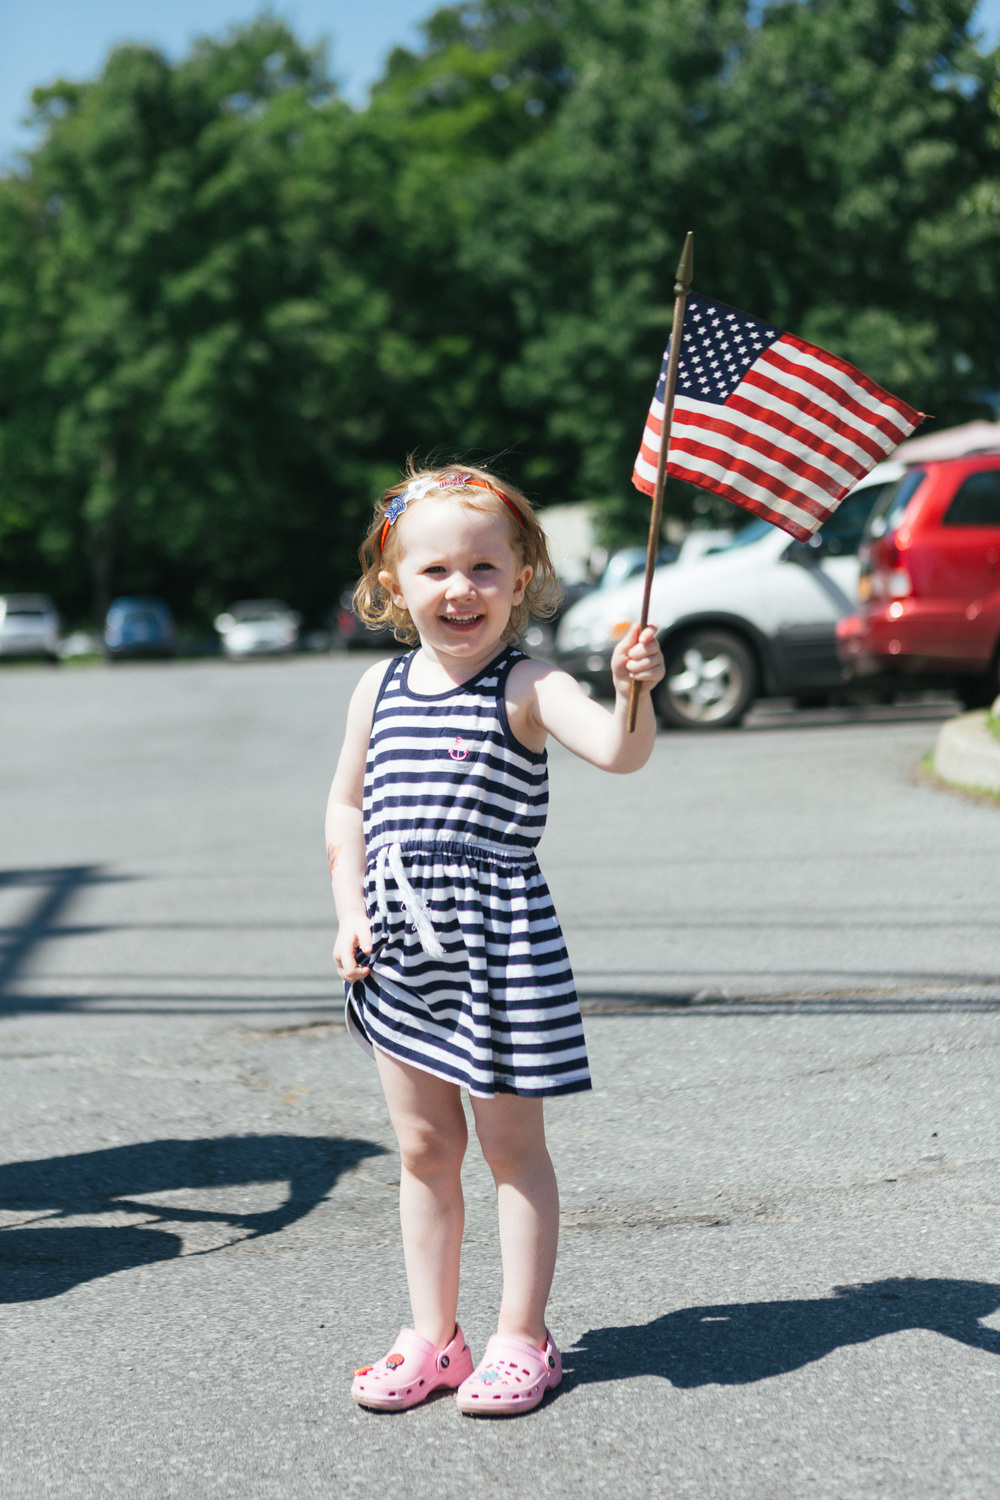 A patriotic young girl celebrates before the parade in Tannersville.jpg